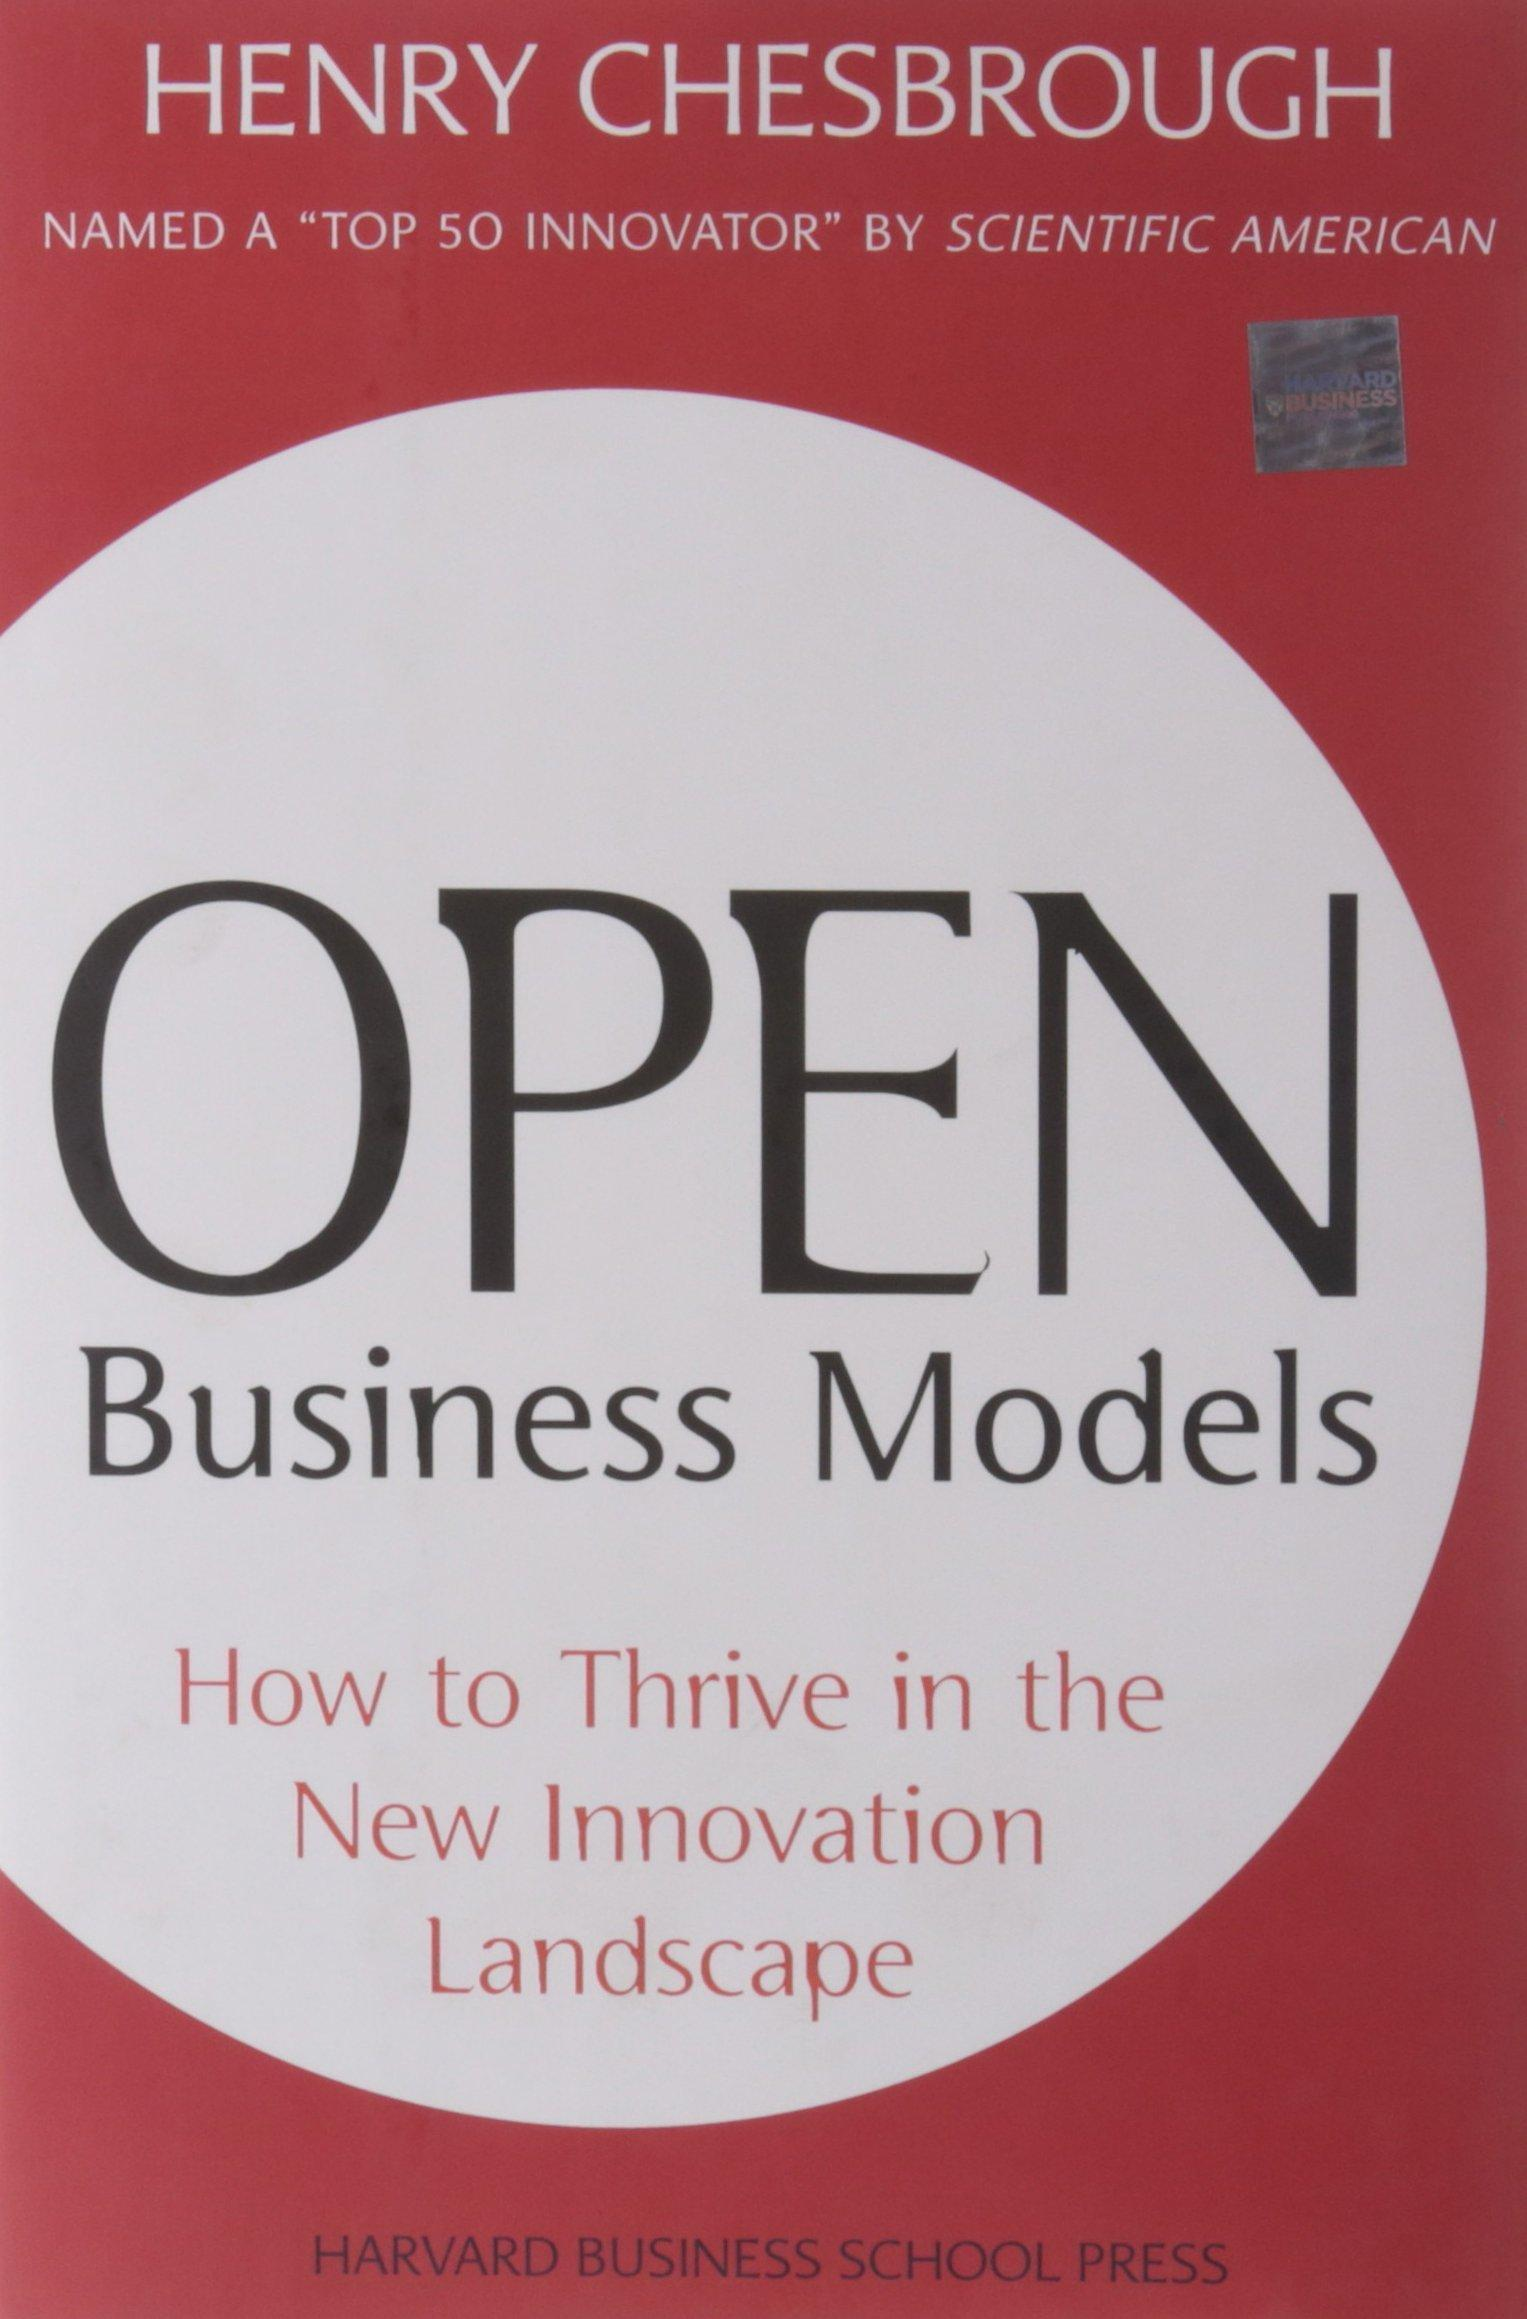 Open Innovation Models: How to Thrive In the New Innovation Landscape